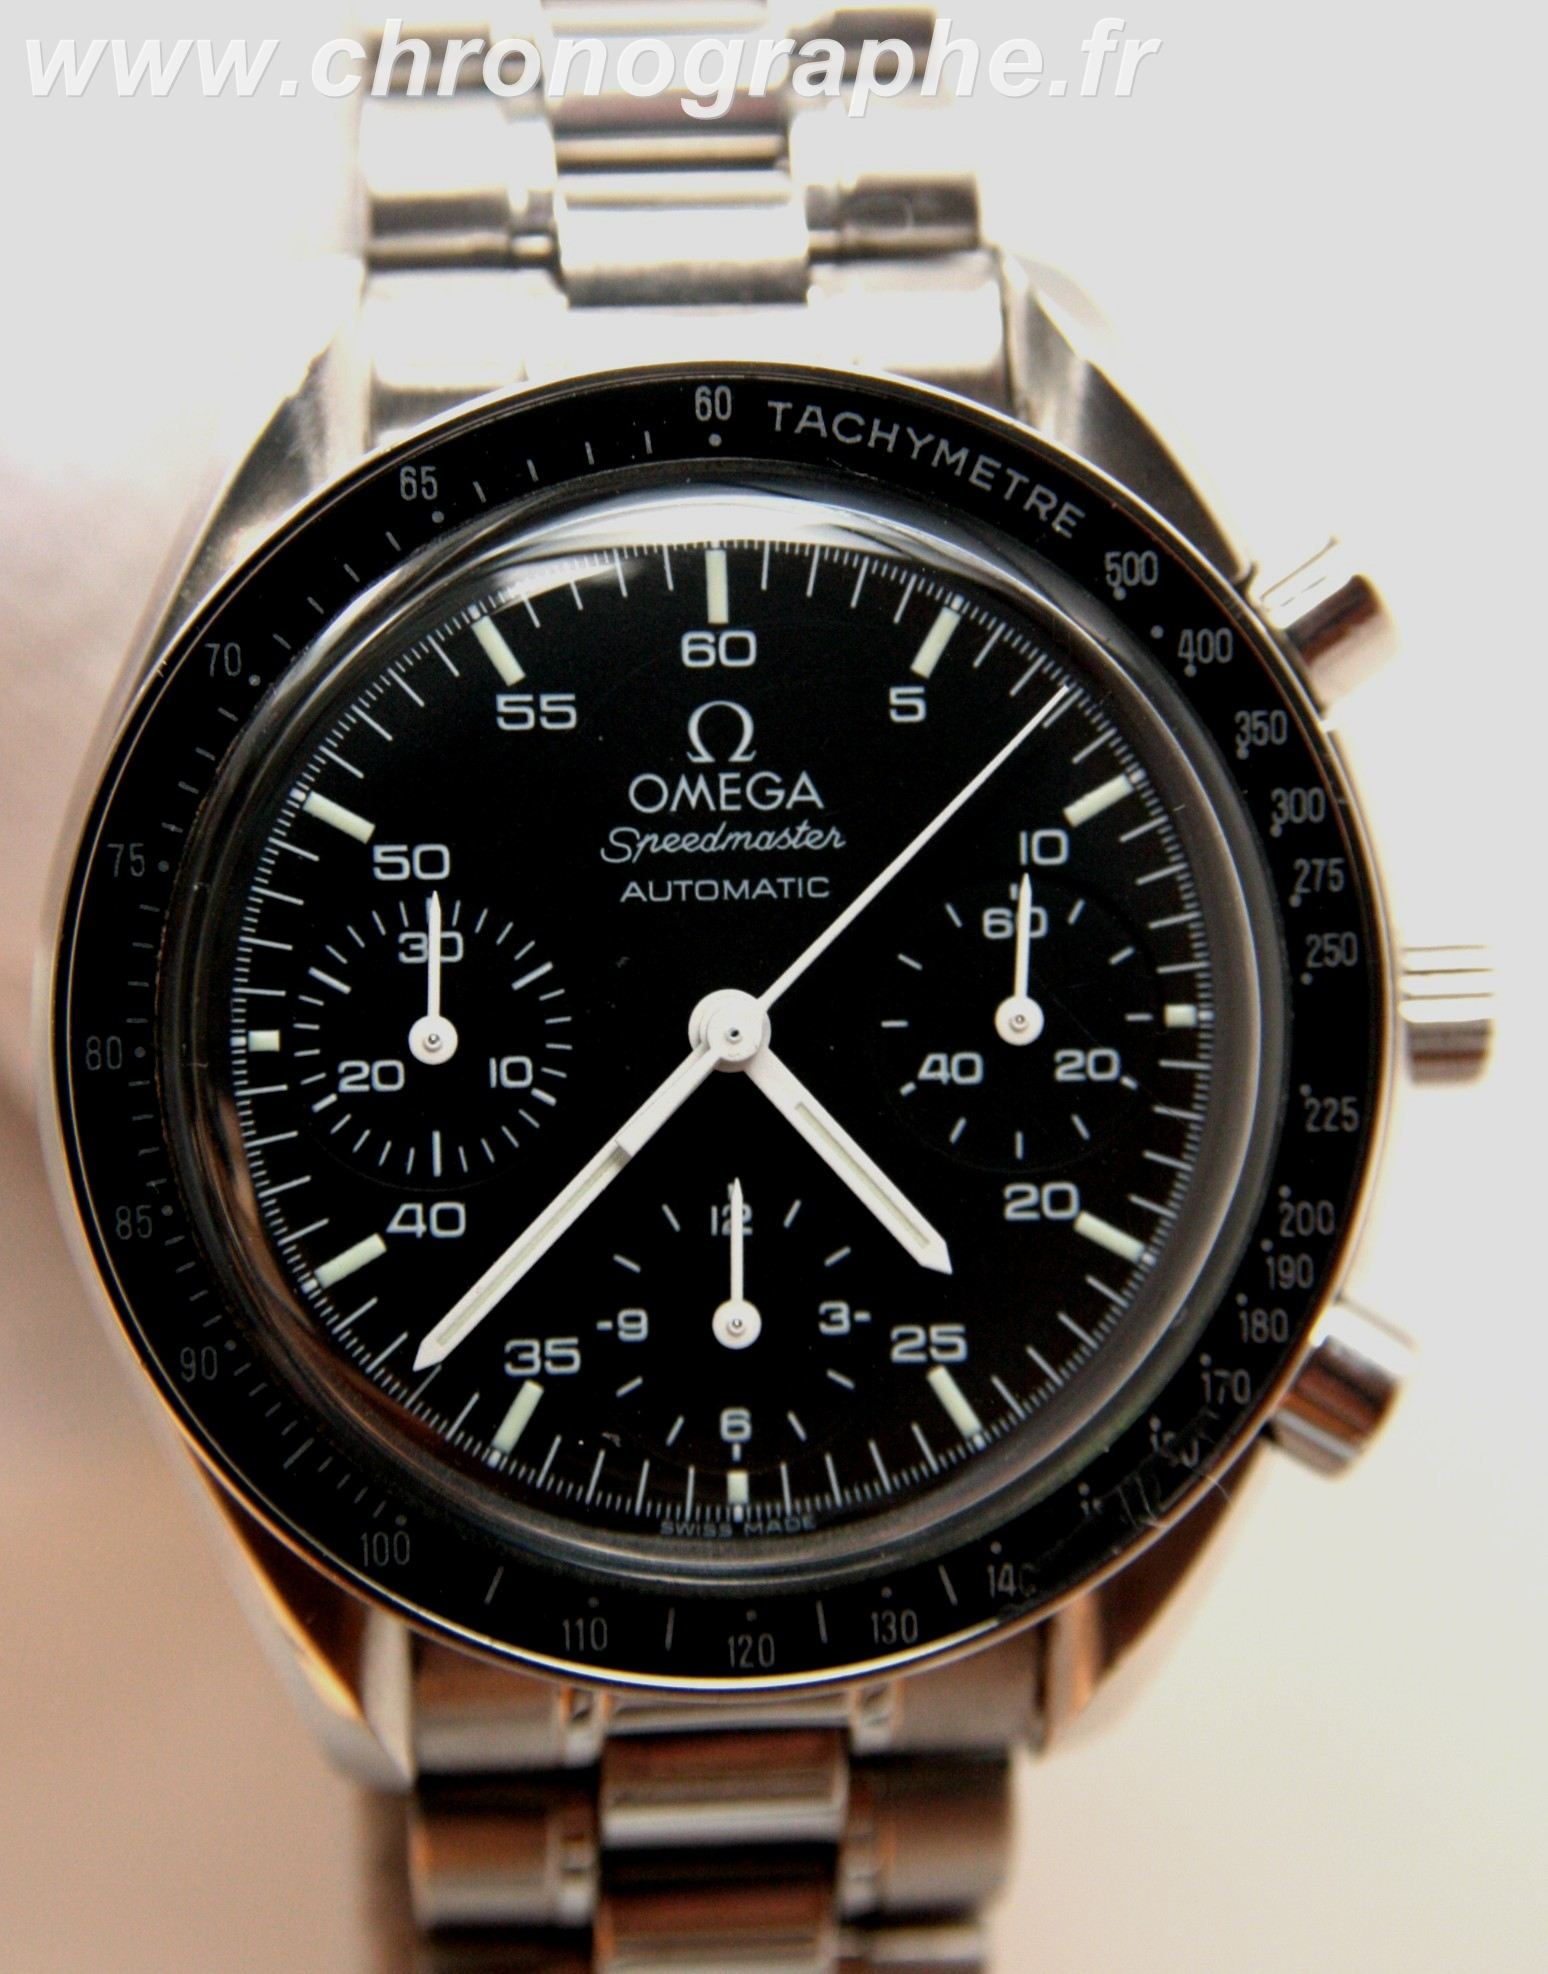 OMEGA SPEEDMASTER reduced chrono 1750032.1